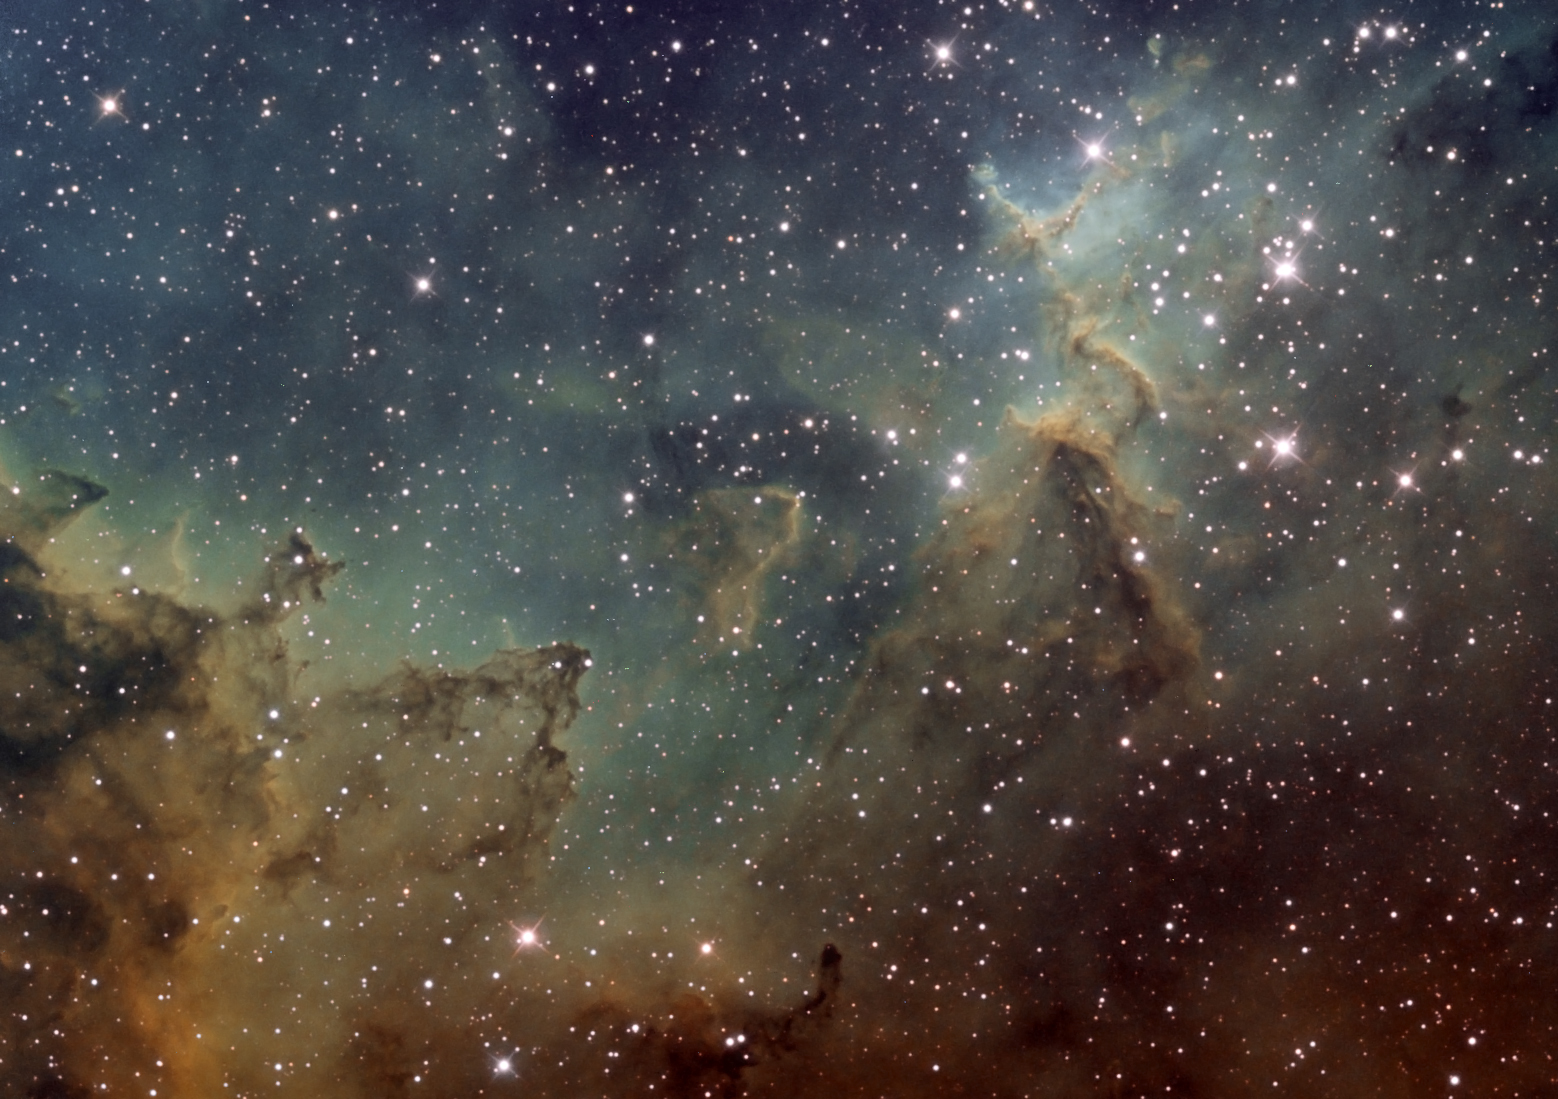 The Heller Observatory » Blog Archive » 9/24/2011 IC 1805 ...